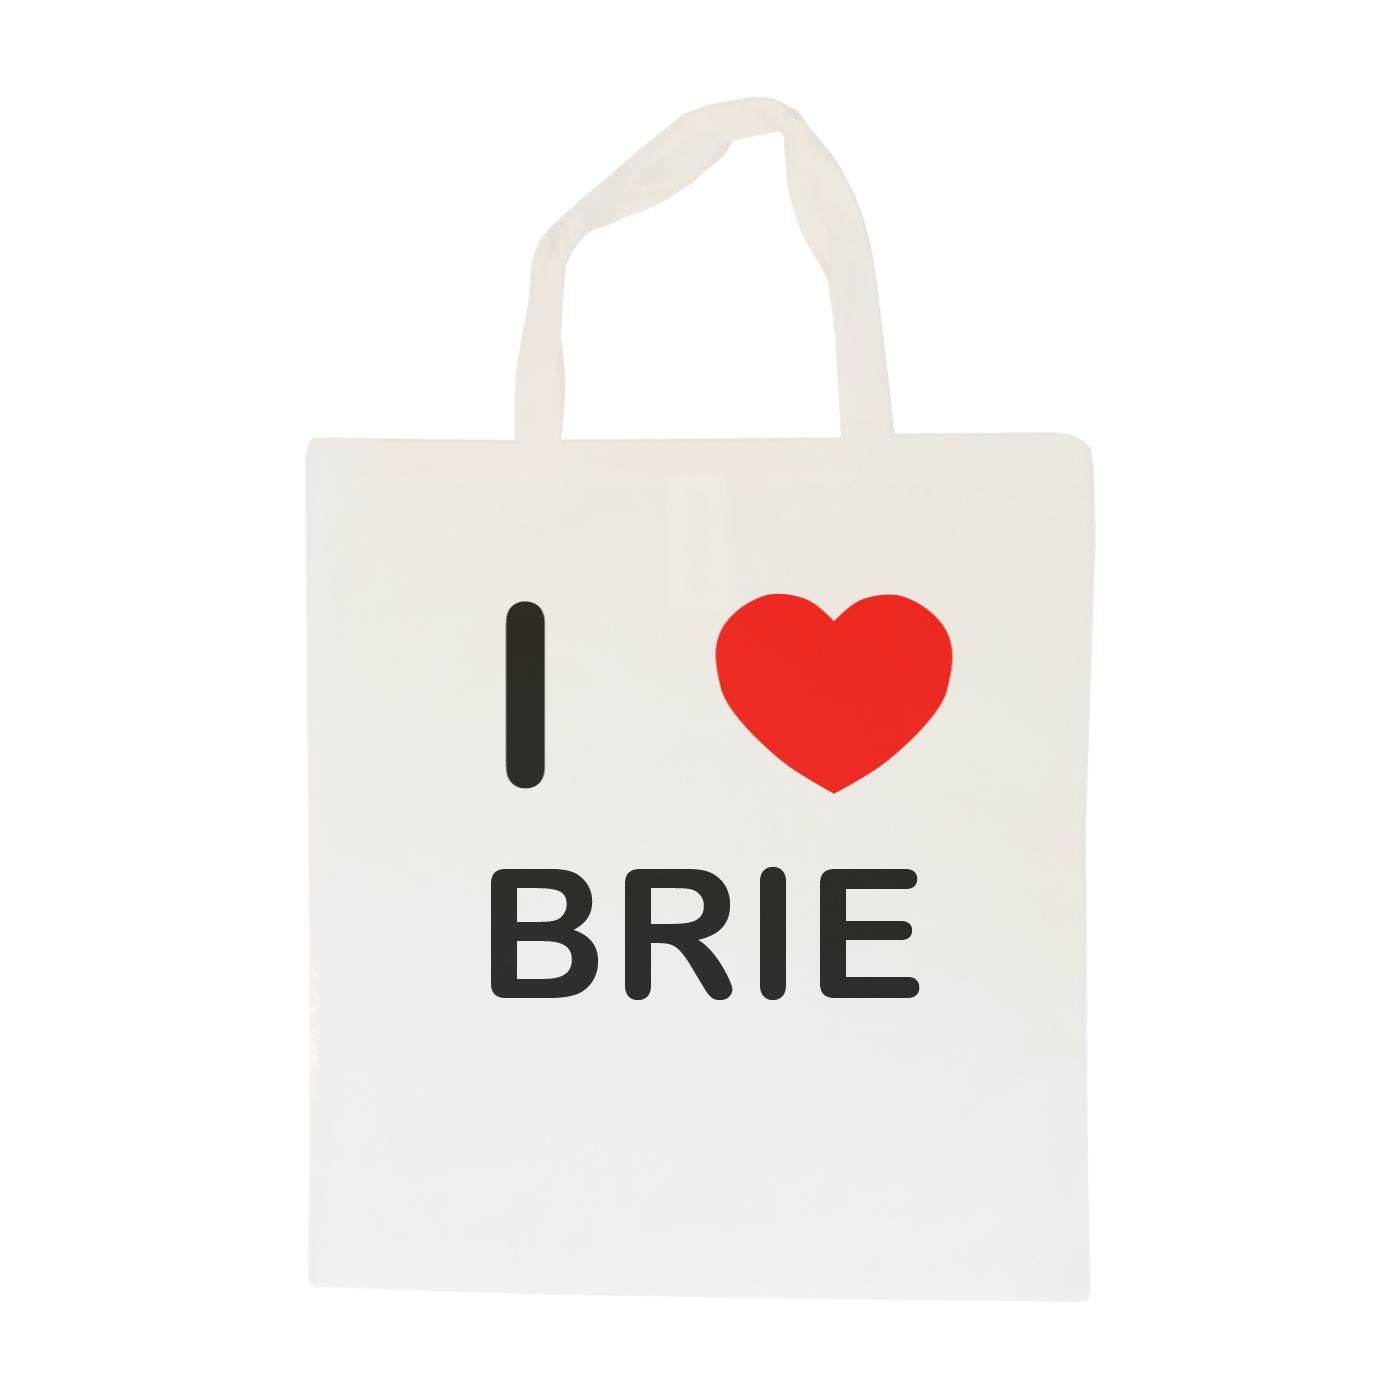 I Love Brie - Cotton Bag | Size choice Tote, Shopper or Sling